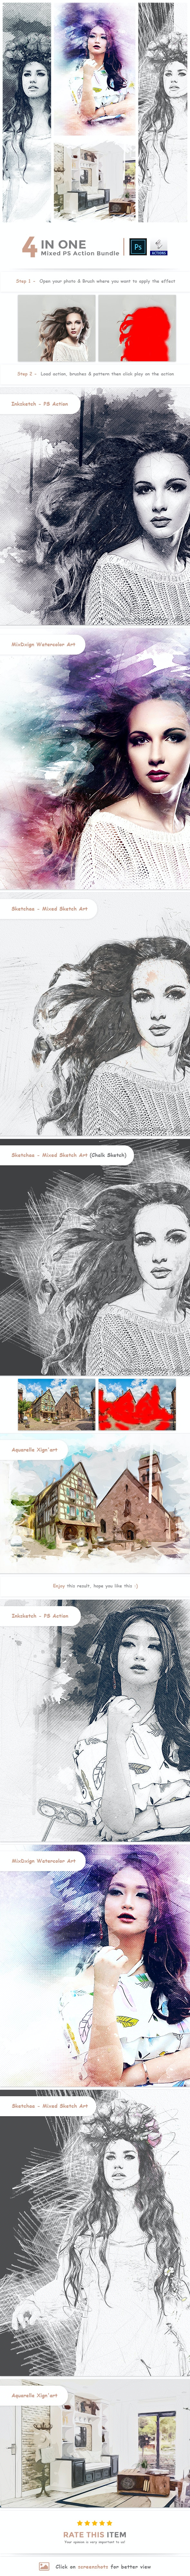 4 in One Mixed PS Action Bundle - Photo Effects Actions